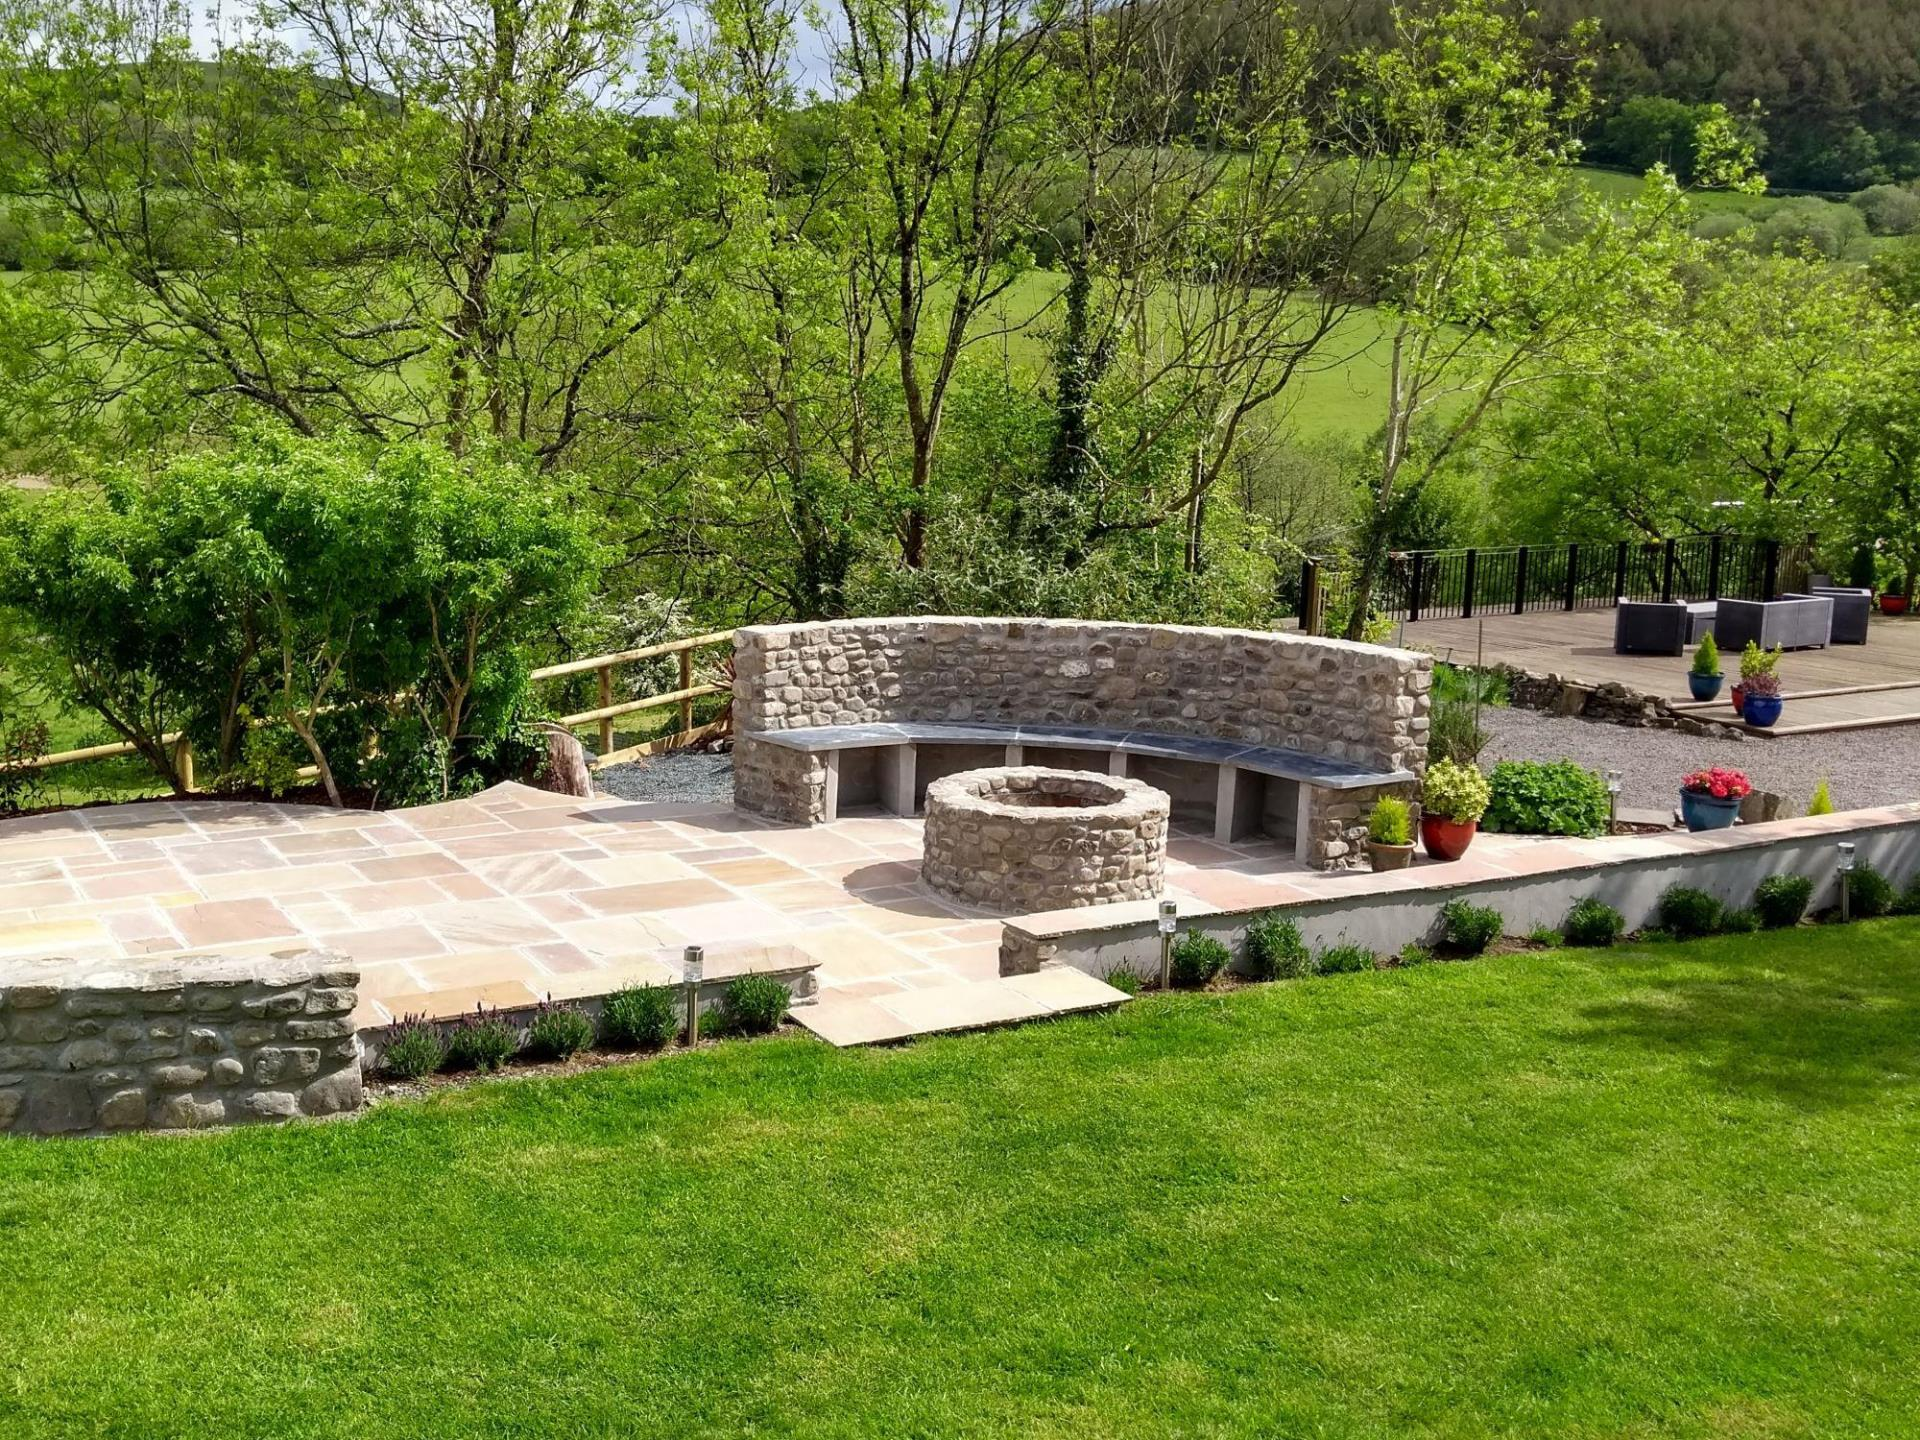 New for 2019 - Stone & Slate Terrace with Fire-Pit